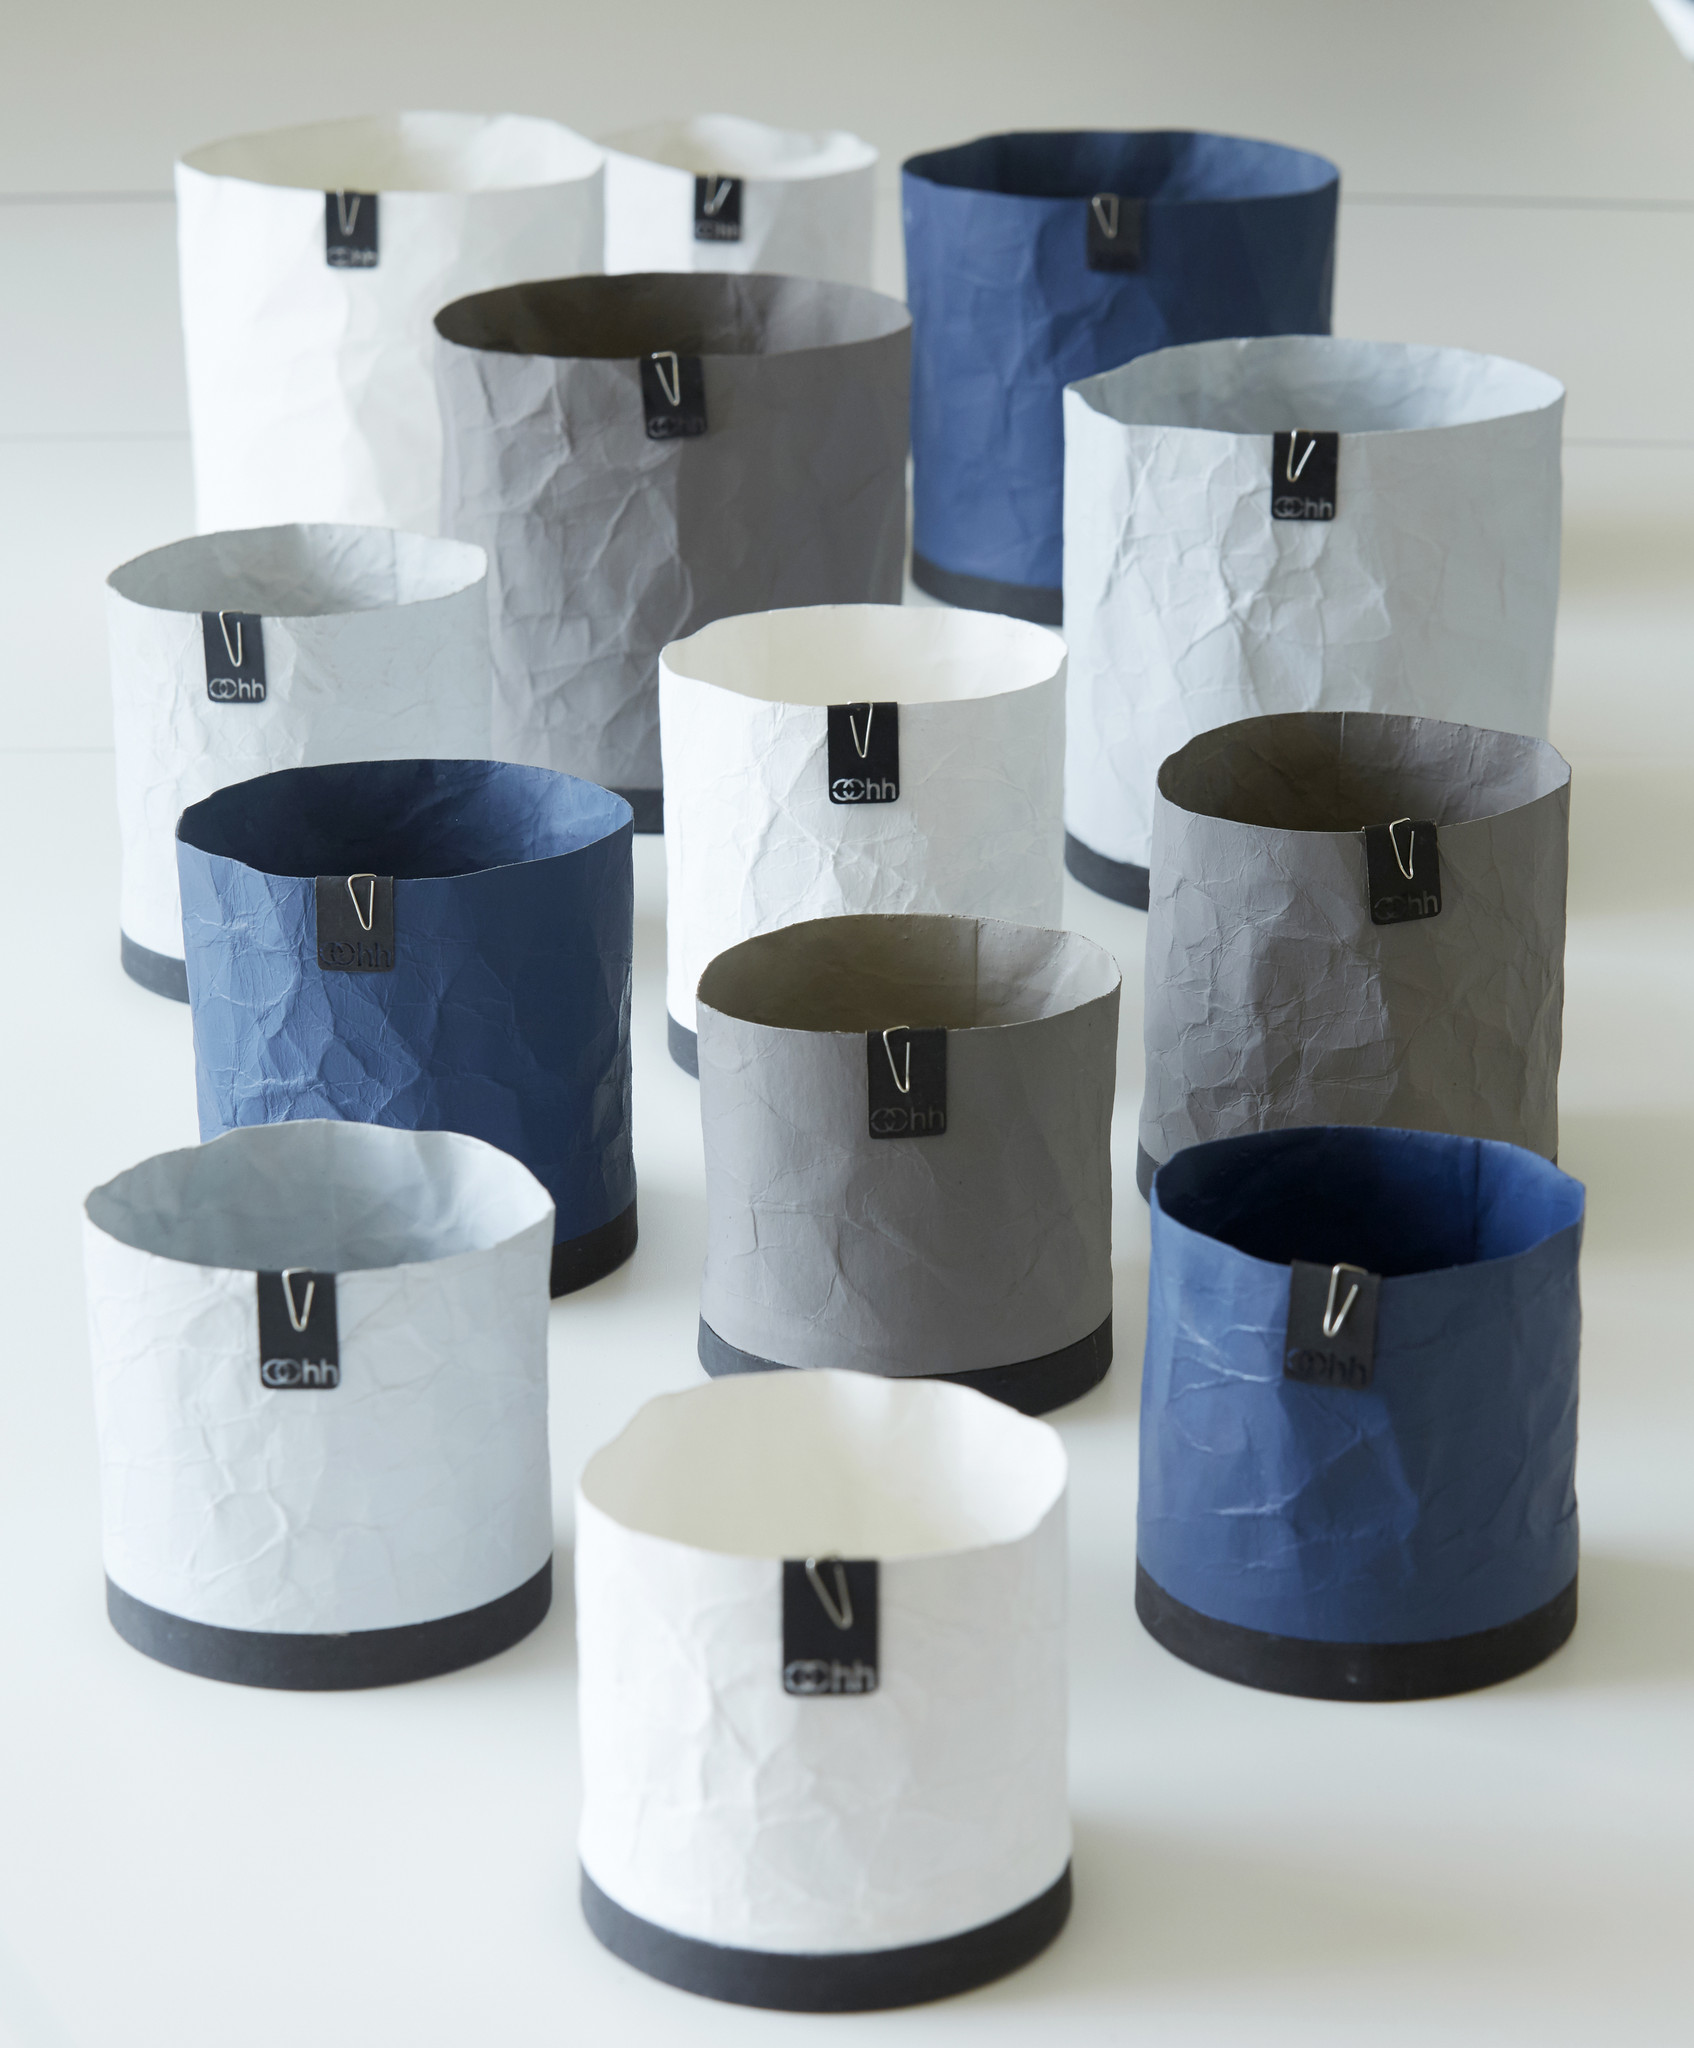 Lubech Living Cement Creased Oohh Plant Pot